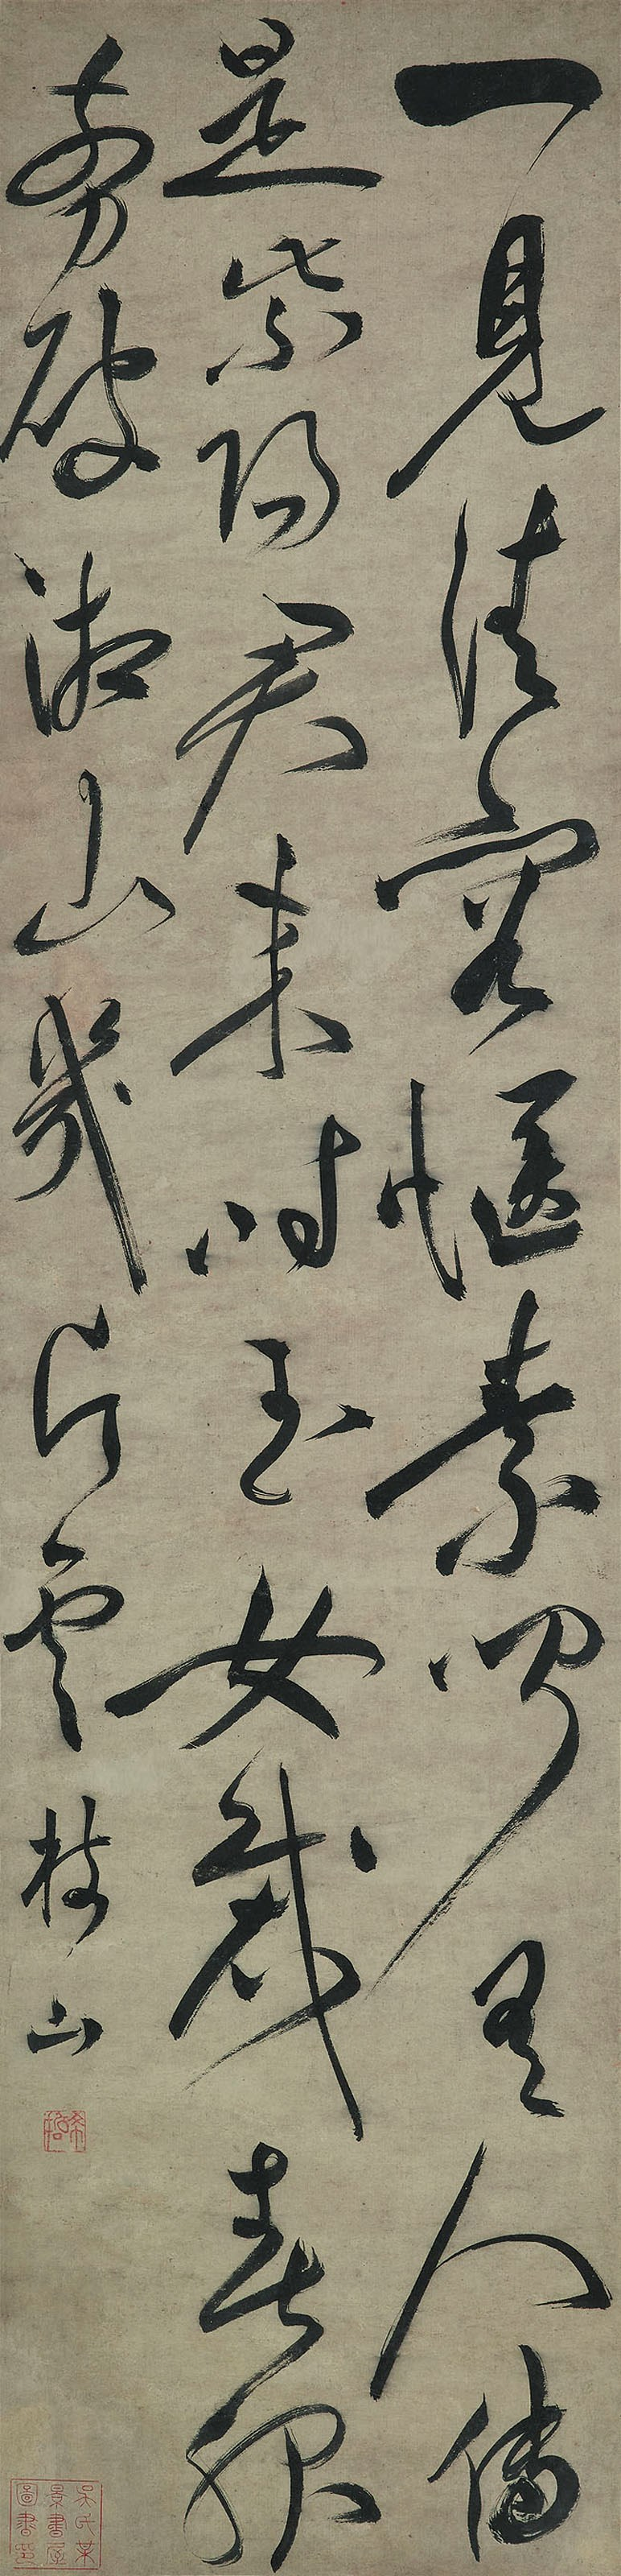 Zhu Yunming (1460-1526), Seven-character Poem in Cursive Script. The work was formerly in the collection of the renowned artist-cum-collector Wu Hufan (1894-1968) and is recorded in Wu Hufans essays, published in 2004. 136.5 x 32.4  cm (53⅝ x 12¾  in). Sold for HK$10,830,000 on 27 May 2013  at Christie's in Hong Kong